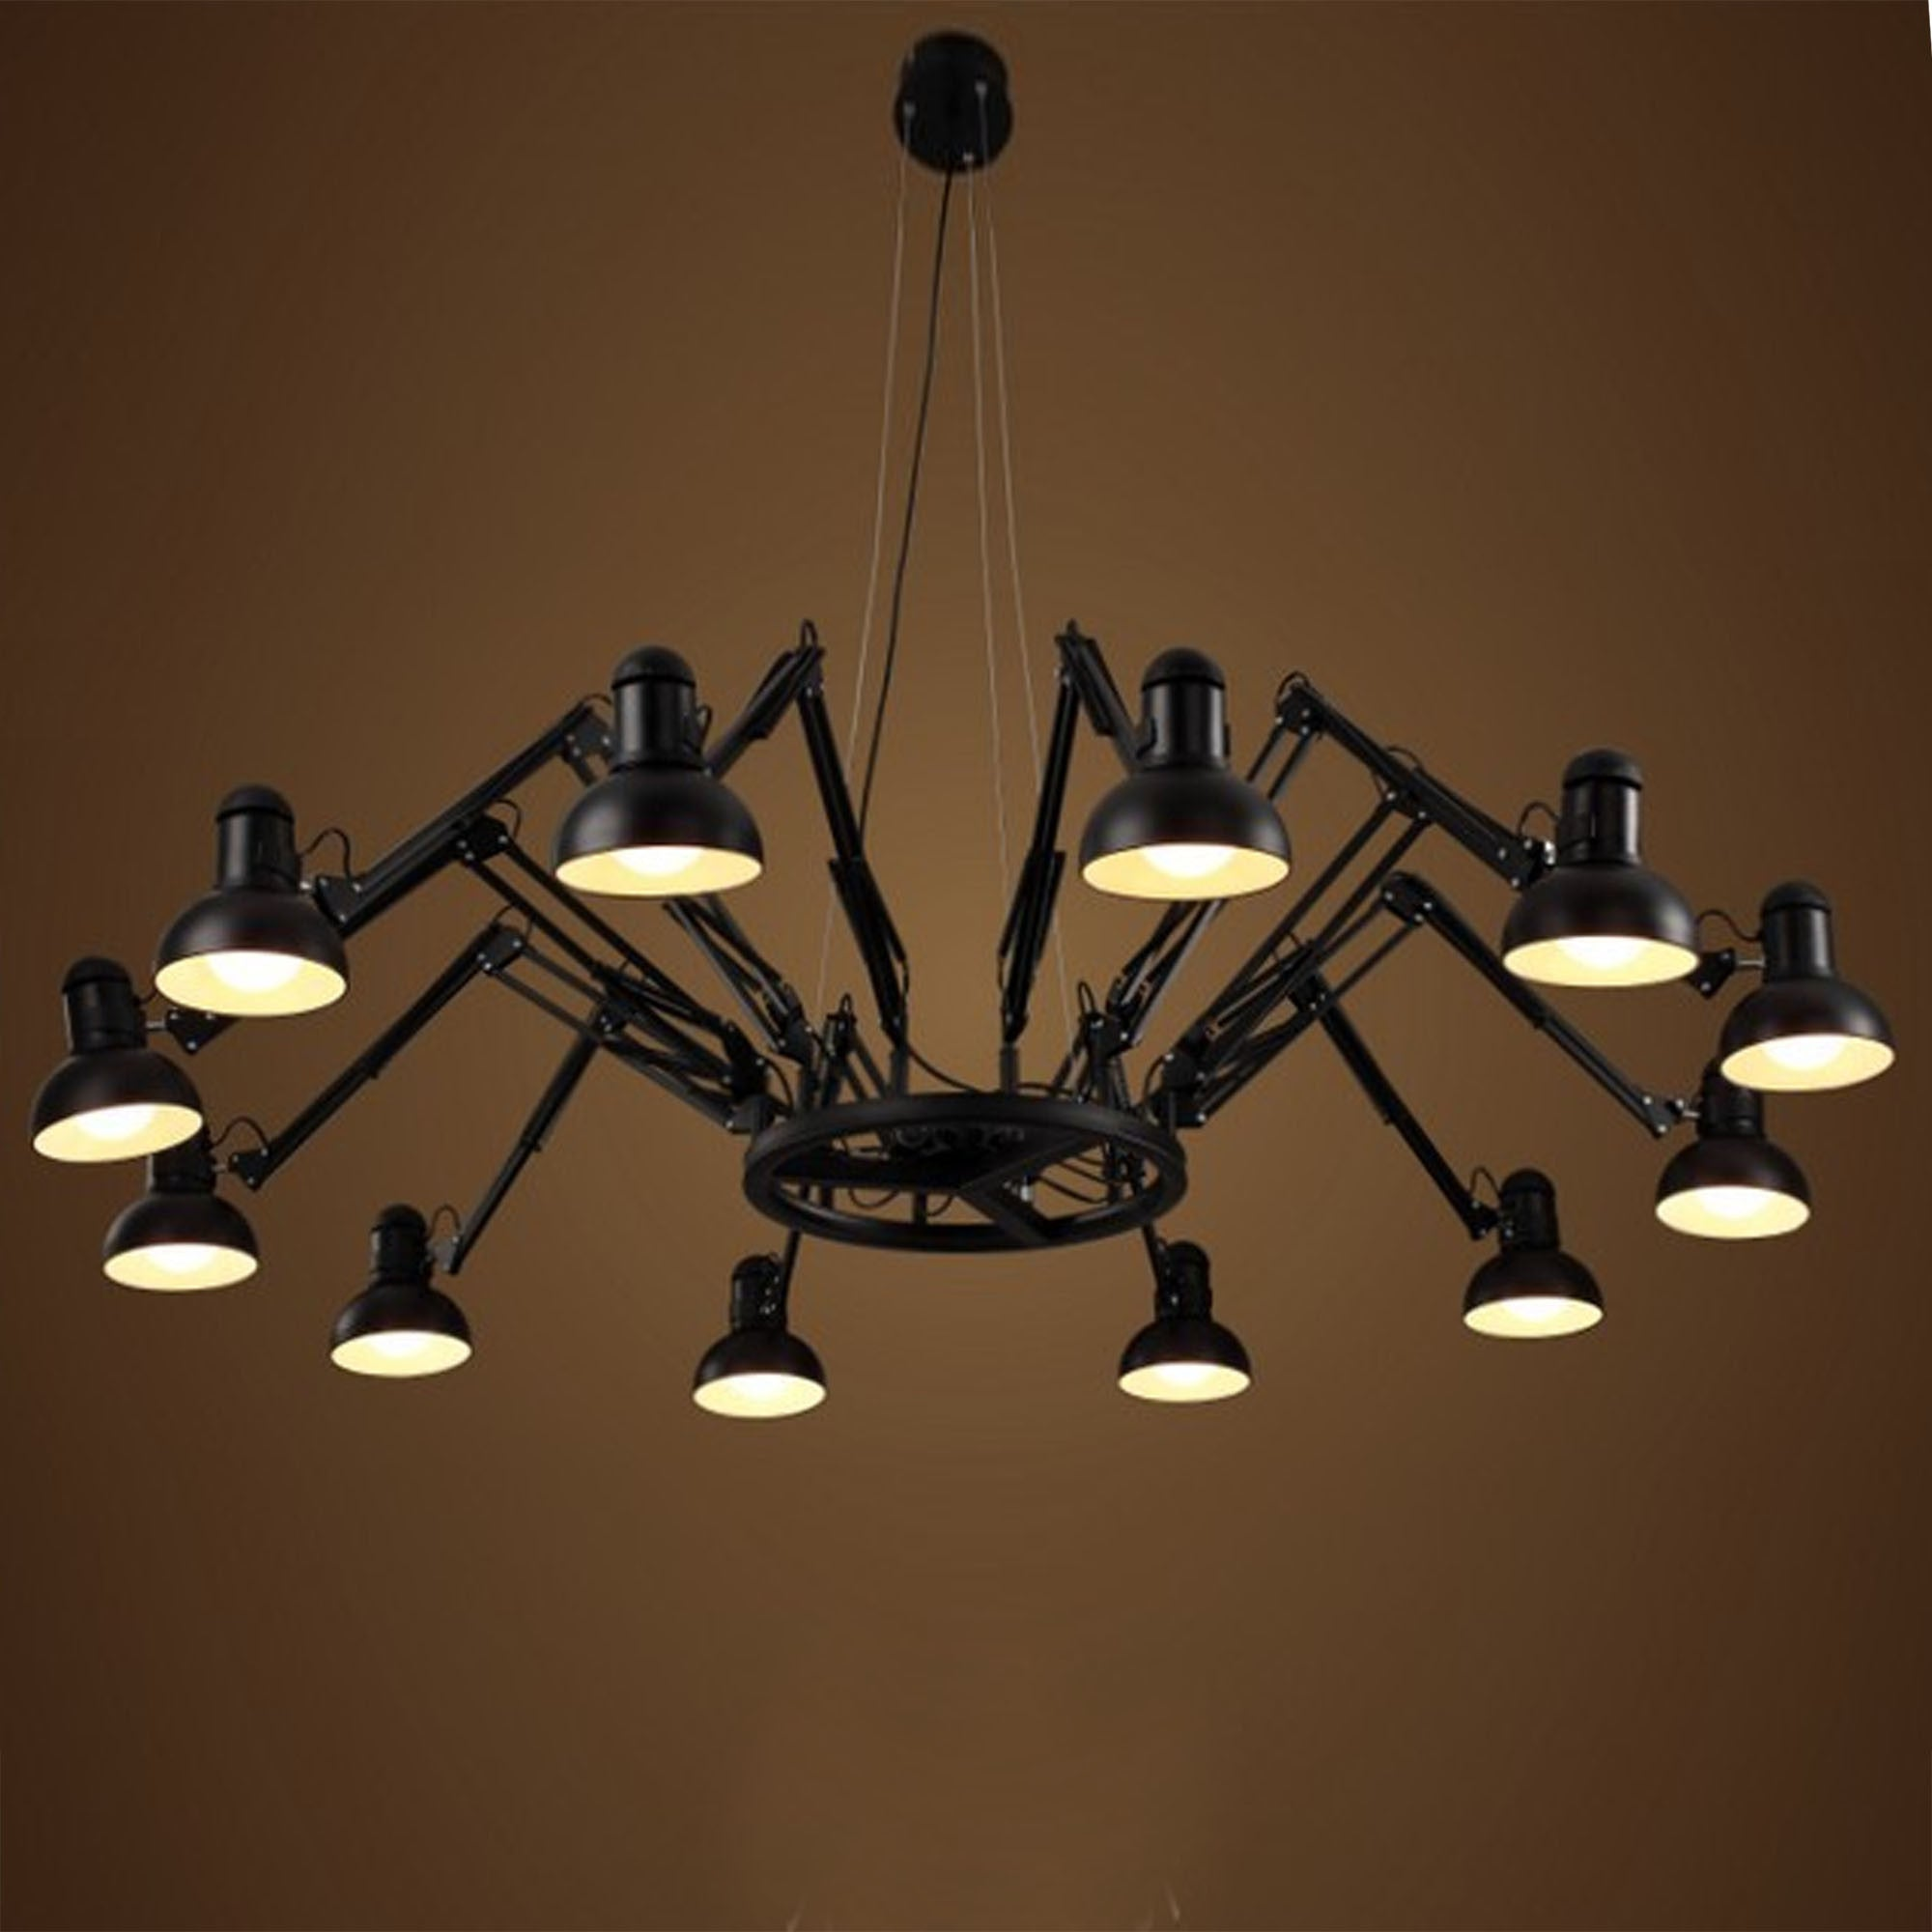 12 heads Spider Classic Chandelier CY-DD-463-12 -  بتصميم العنكبوت 12 رأس الثريا - Shop Online Furniture and Home Decor Store in Dubai, UAE at ebarza